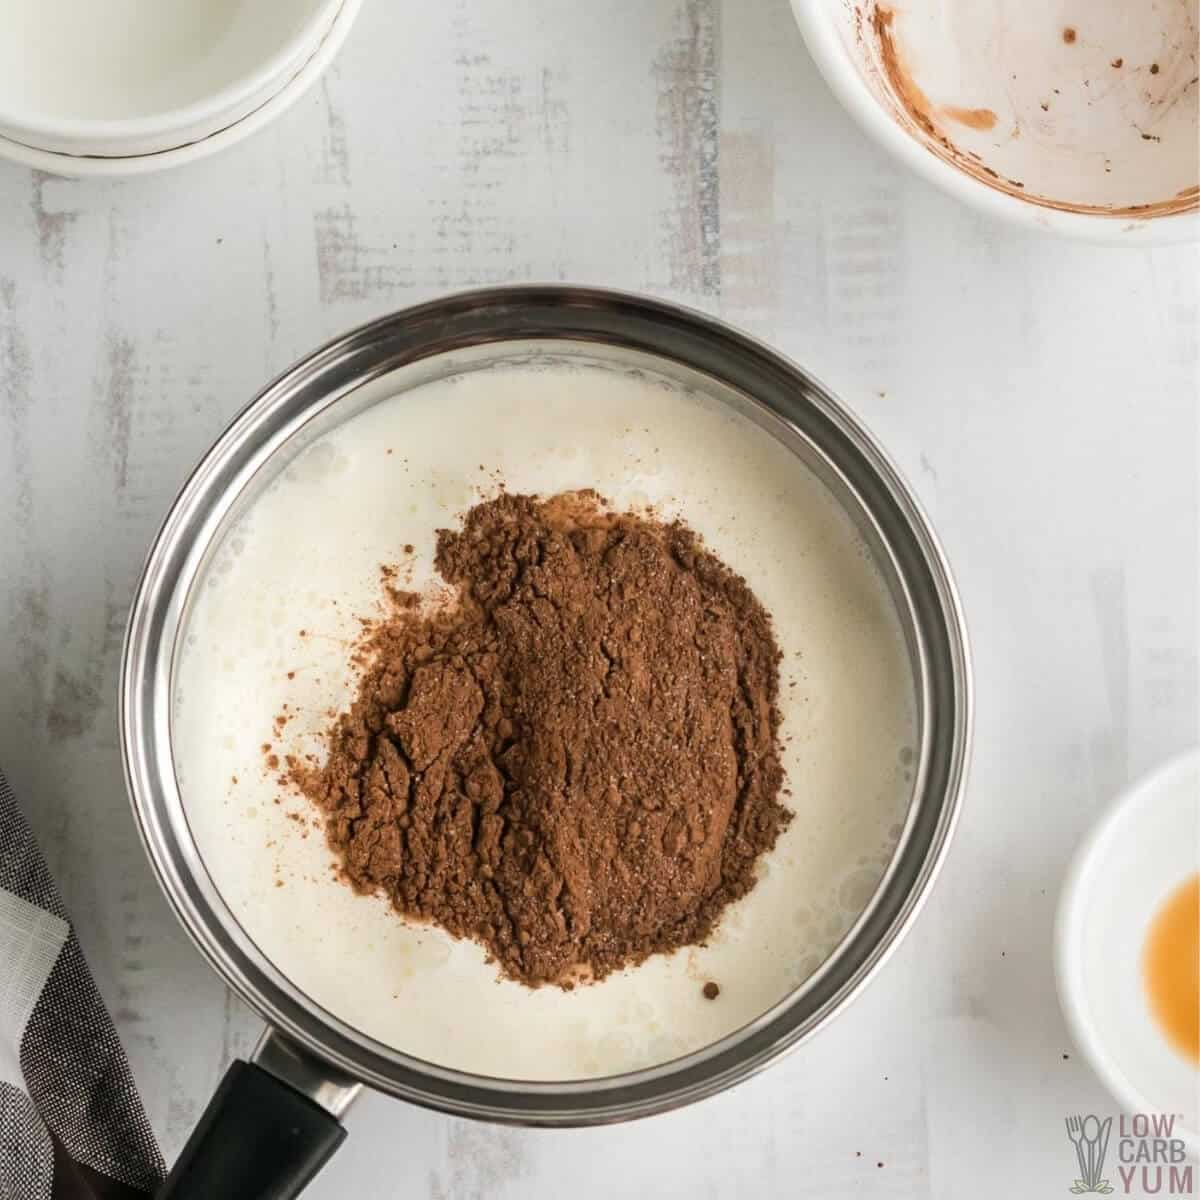 sweetener and cocoa added to water and cream in pot